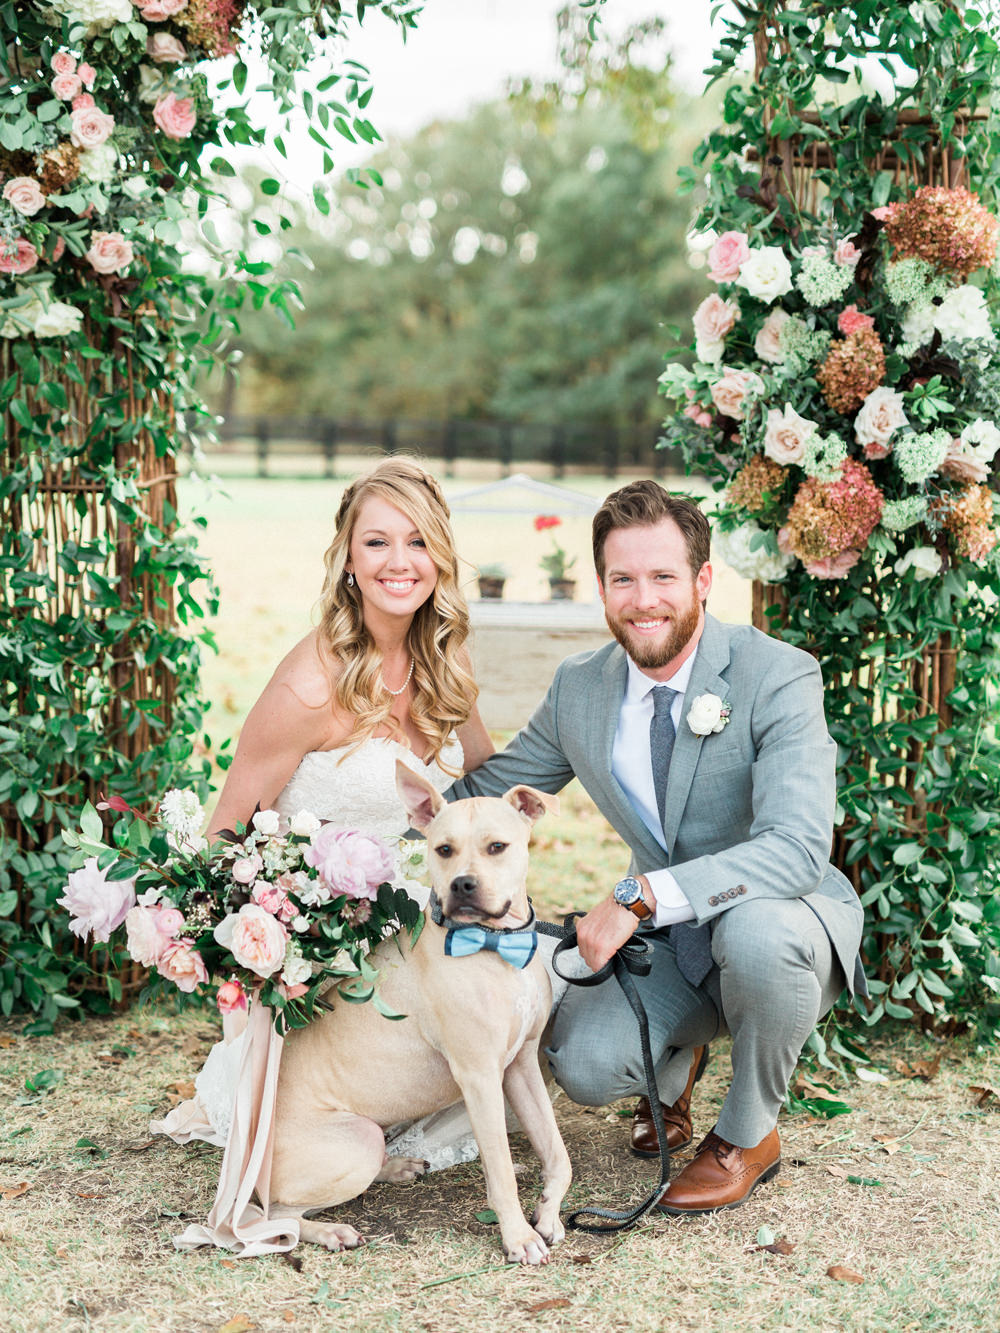 pets at weddings - photo by Elisabeth Carol Photography https://ruffledblog.com/picturesque-garden-wedding-at-white-sparrow-barn